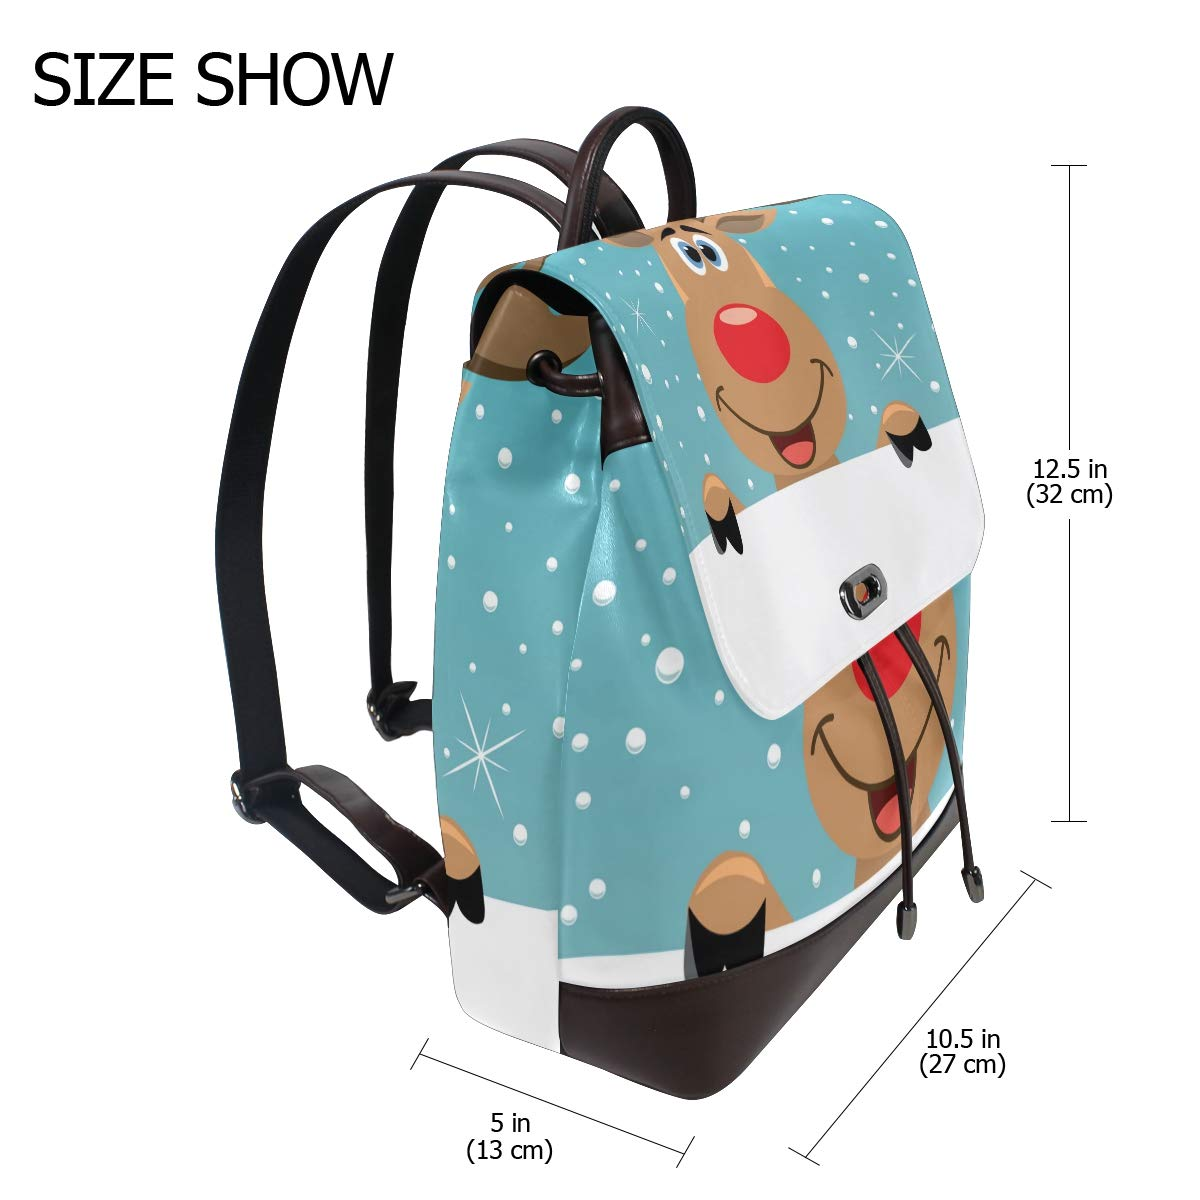 KEAKIA Women PU Leather Rudolph Deer Backpack Purse Travel School Shoulder Bag Casual Daypack